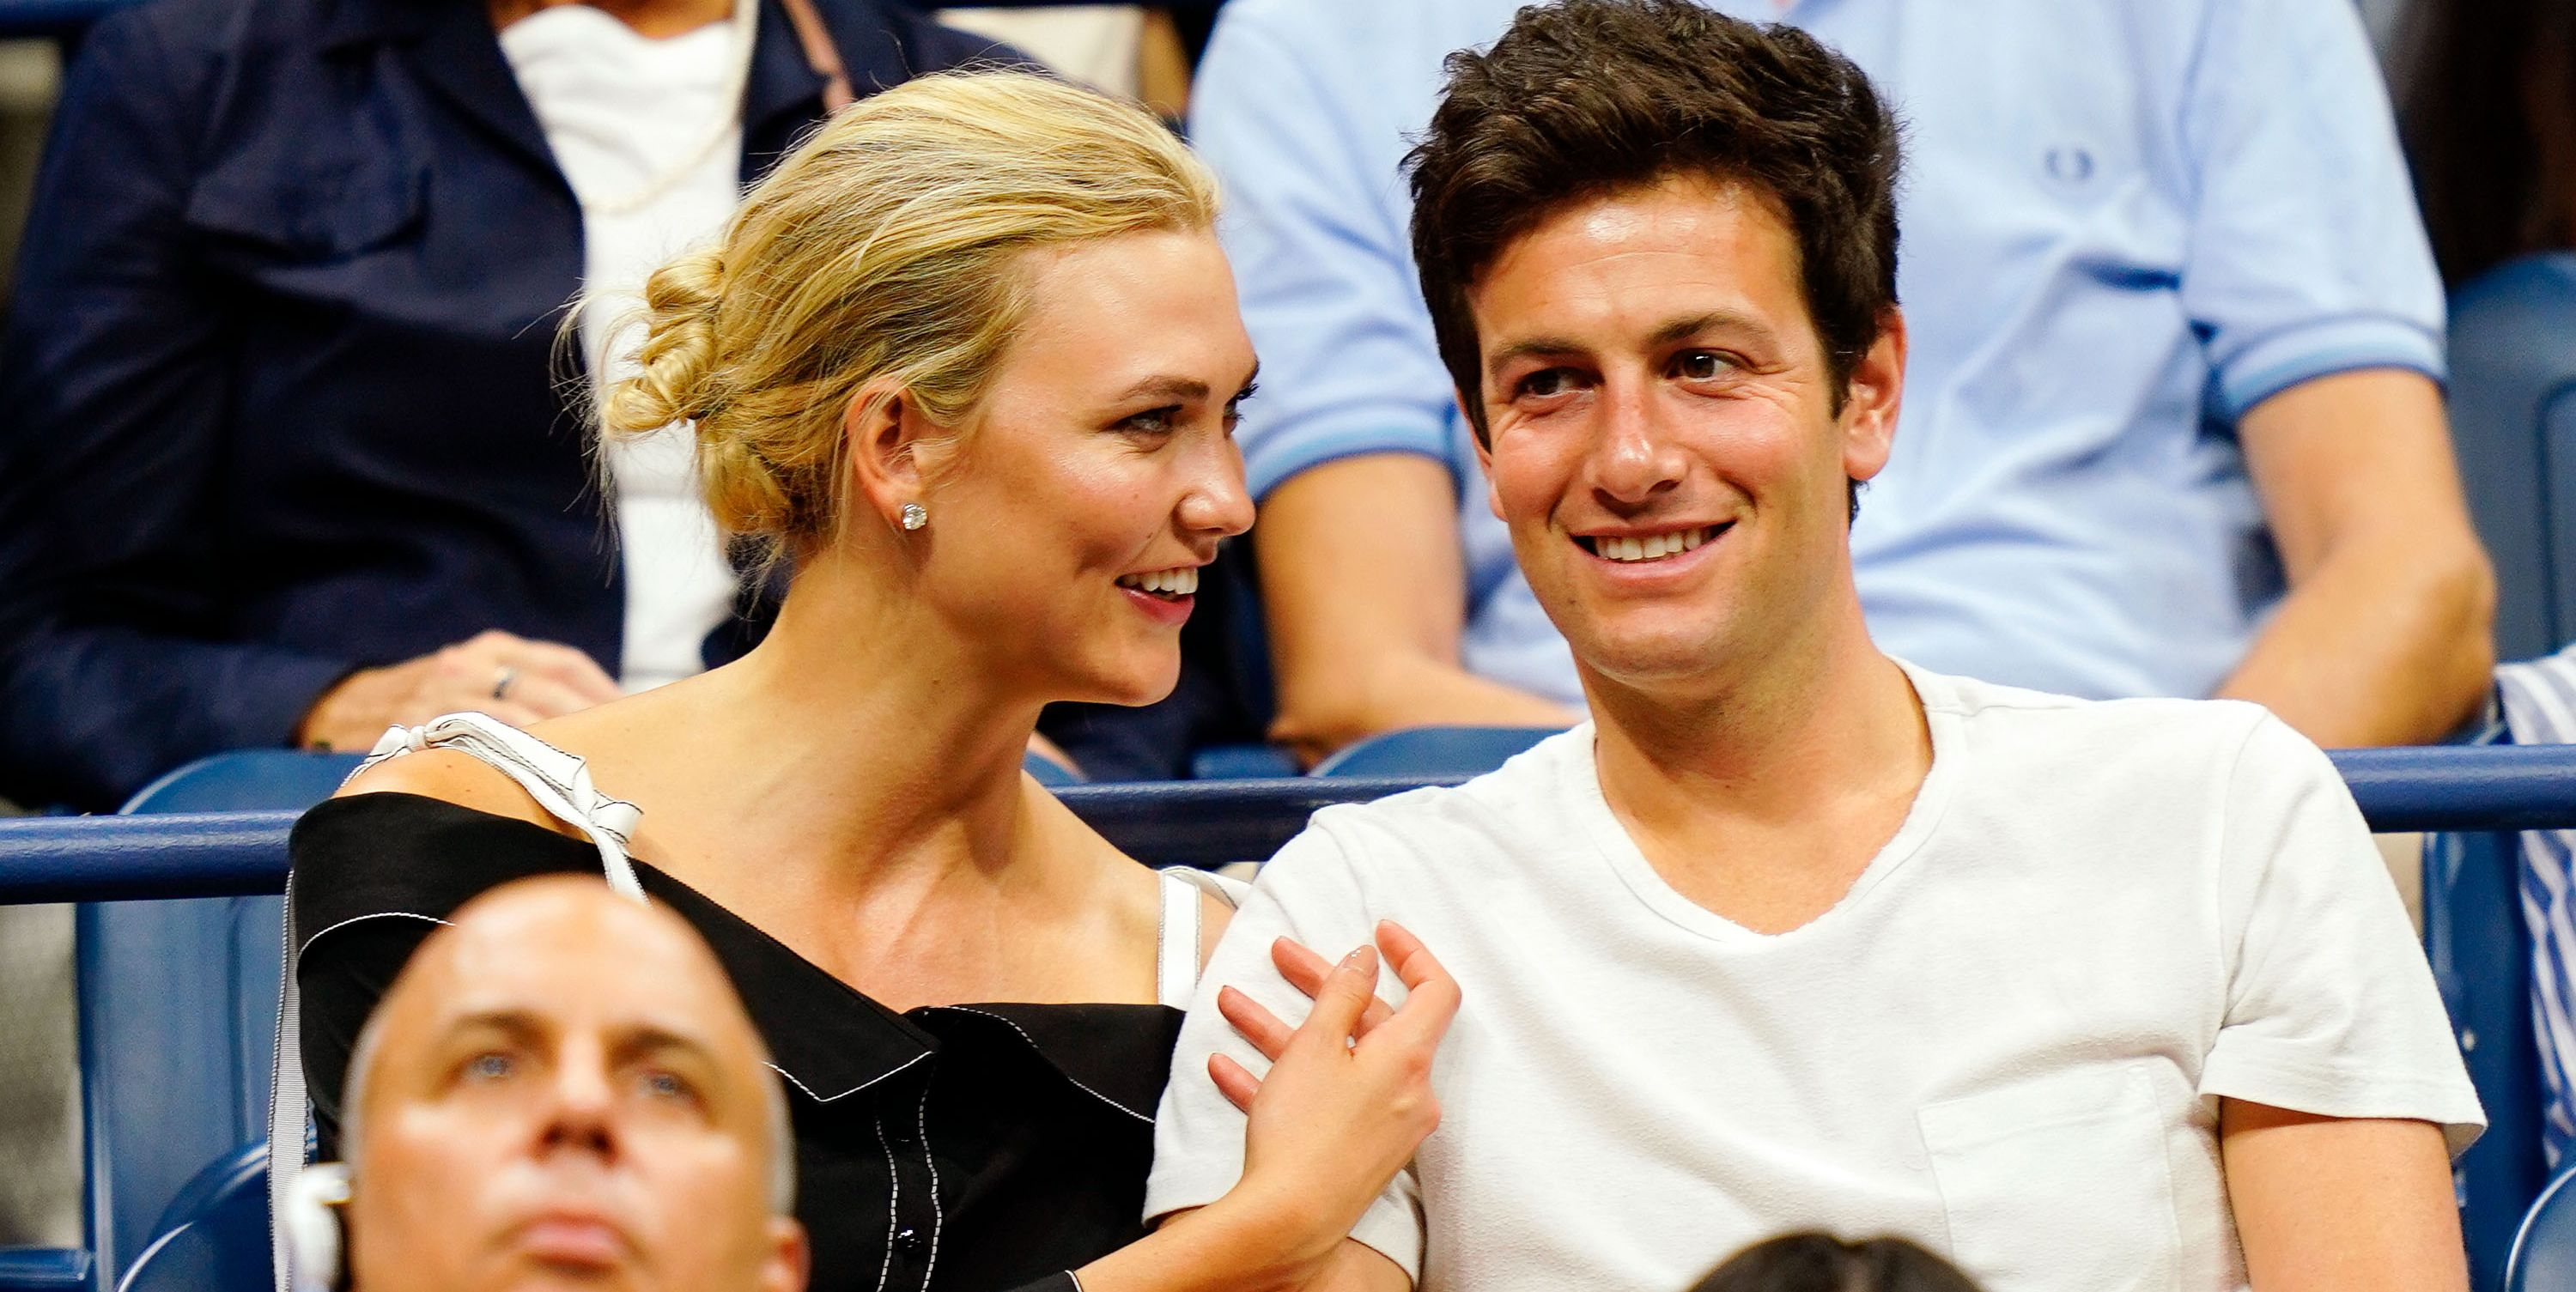 Celebrities Attend The 2018 US Open Tennis Championships - Day 11